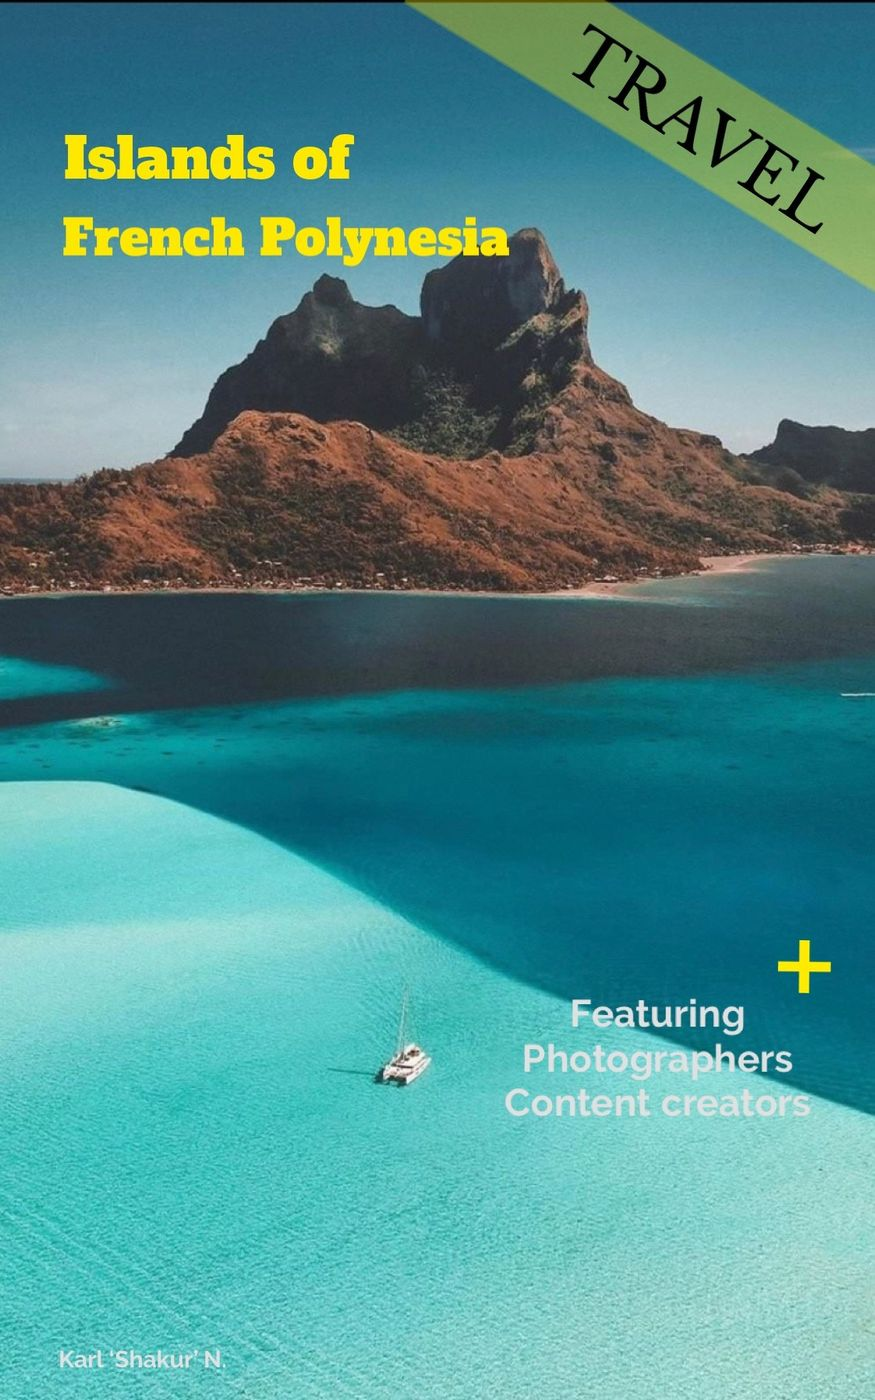 Featuring content creators and photographers | French Polynesia Edition